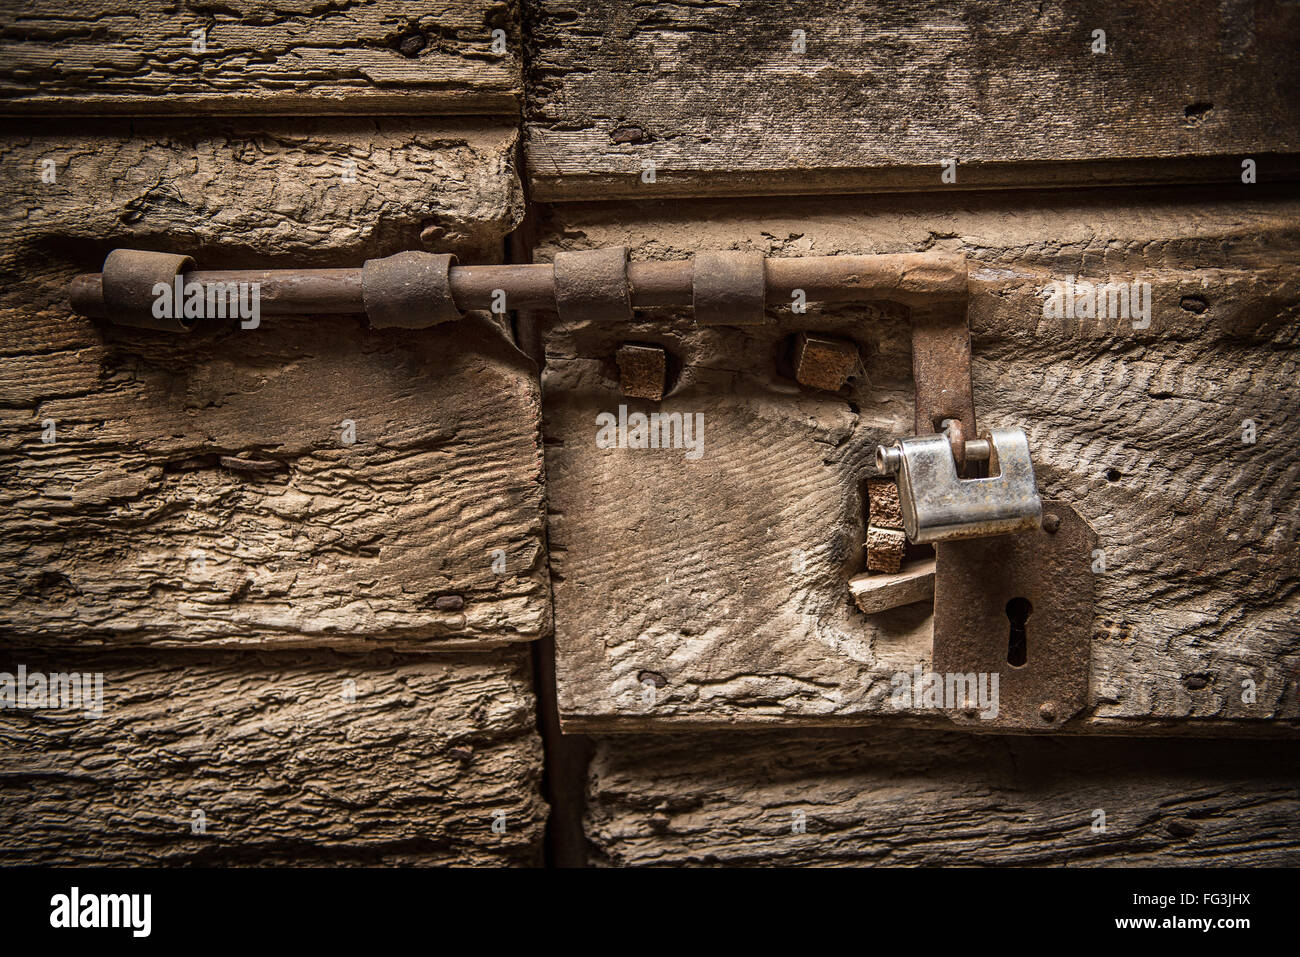 Old lock on a door - Stock Image